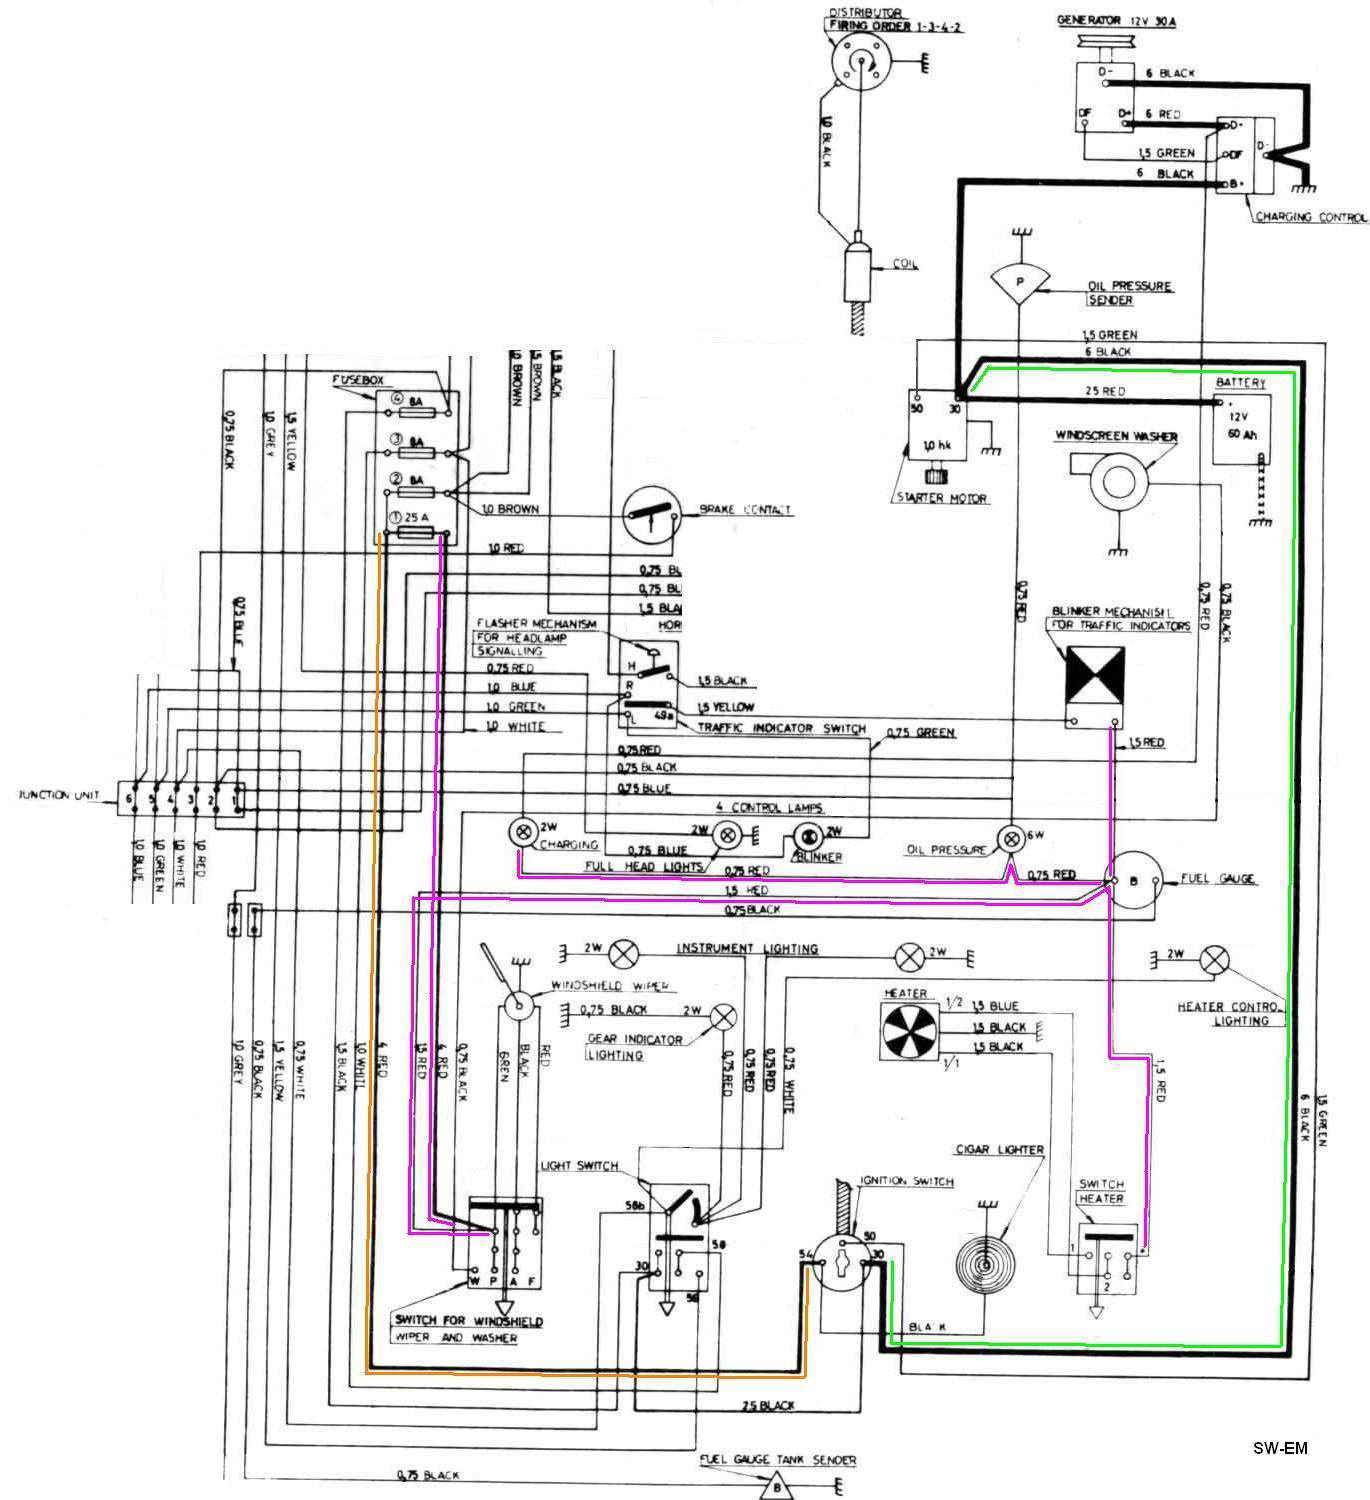 WDH_599] 2004 Volvo Xc90 Wiring Diagrams | wiring diagram WDH_599 |  solid-village.centrostudimad.it | Volvo V70 Ignition Wiring Diagram |  | centrostudimad.it